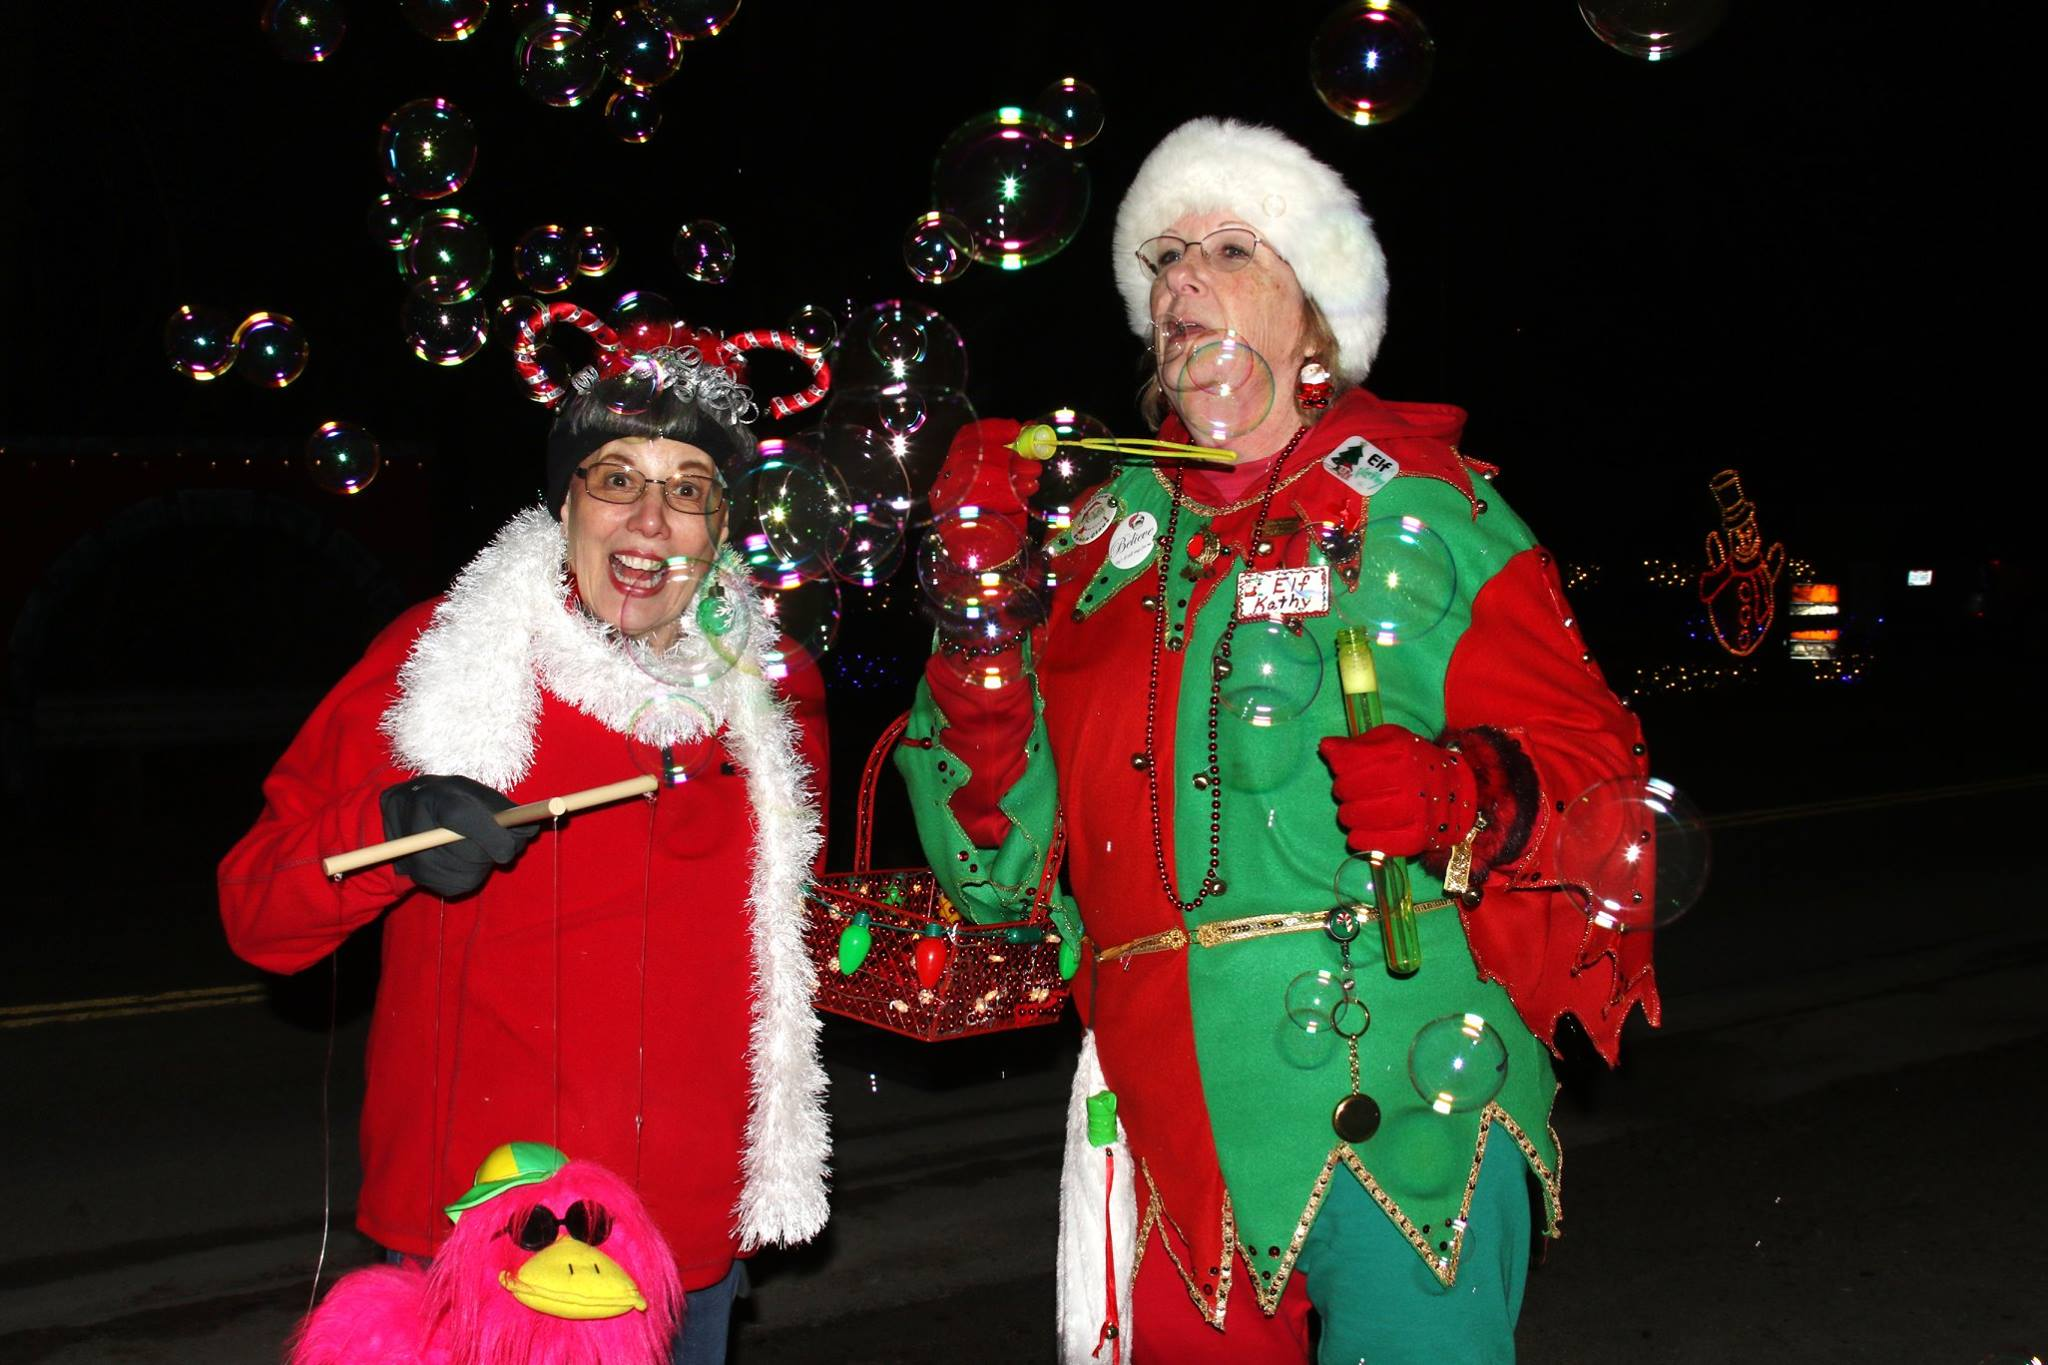 two female volunteer elves at the north pole blowing bubbles and smiling